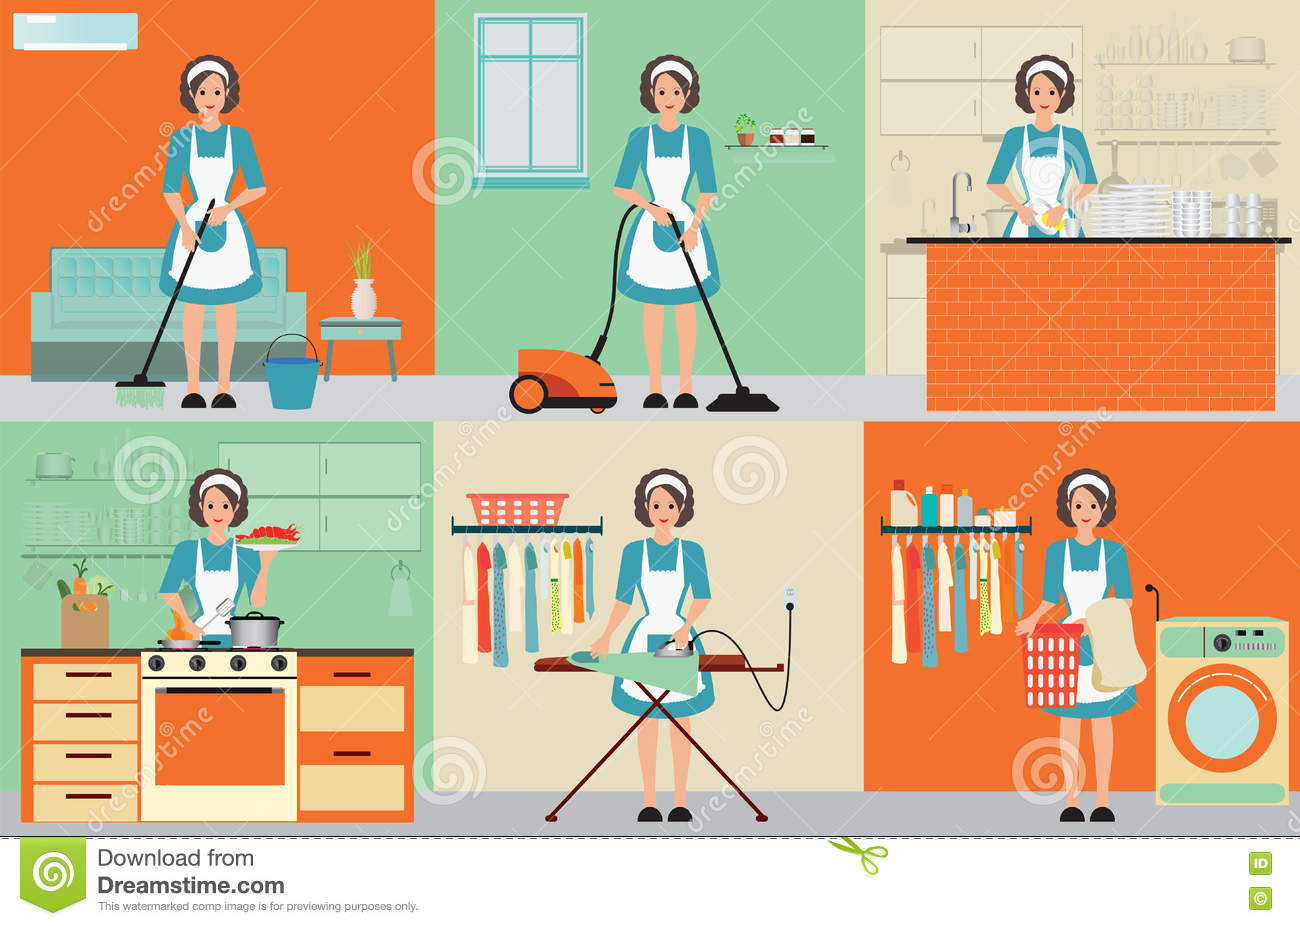 Housewife or a working woman - Your chioce of life partner?